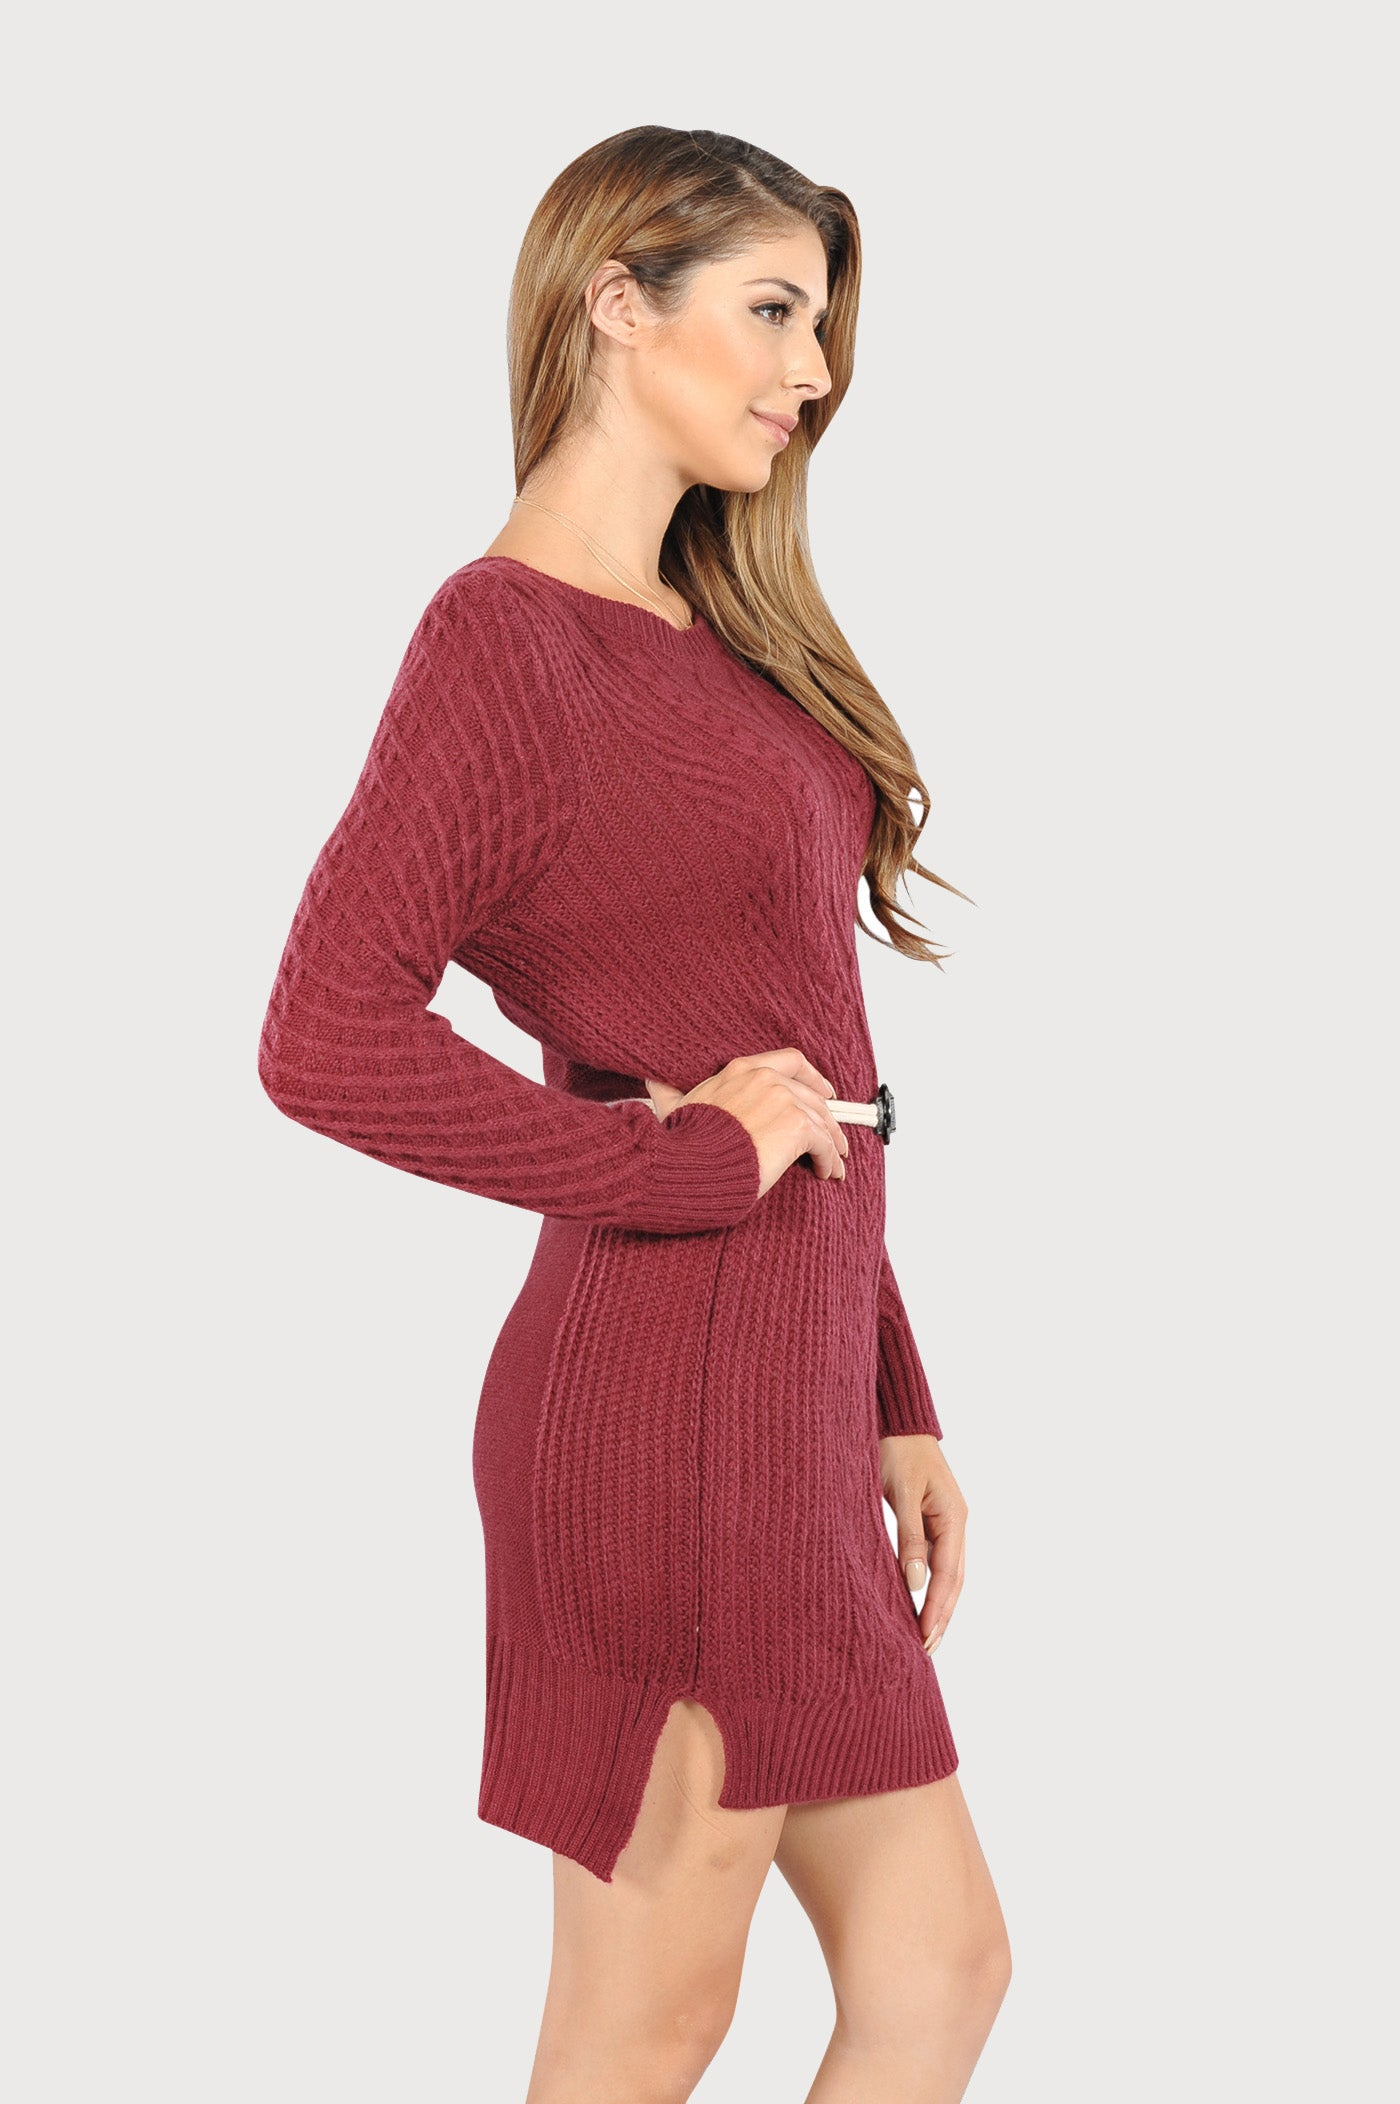 adults womens maroon cable knit winter christmas sweater dress fest threads - Christmas Sweater Dress